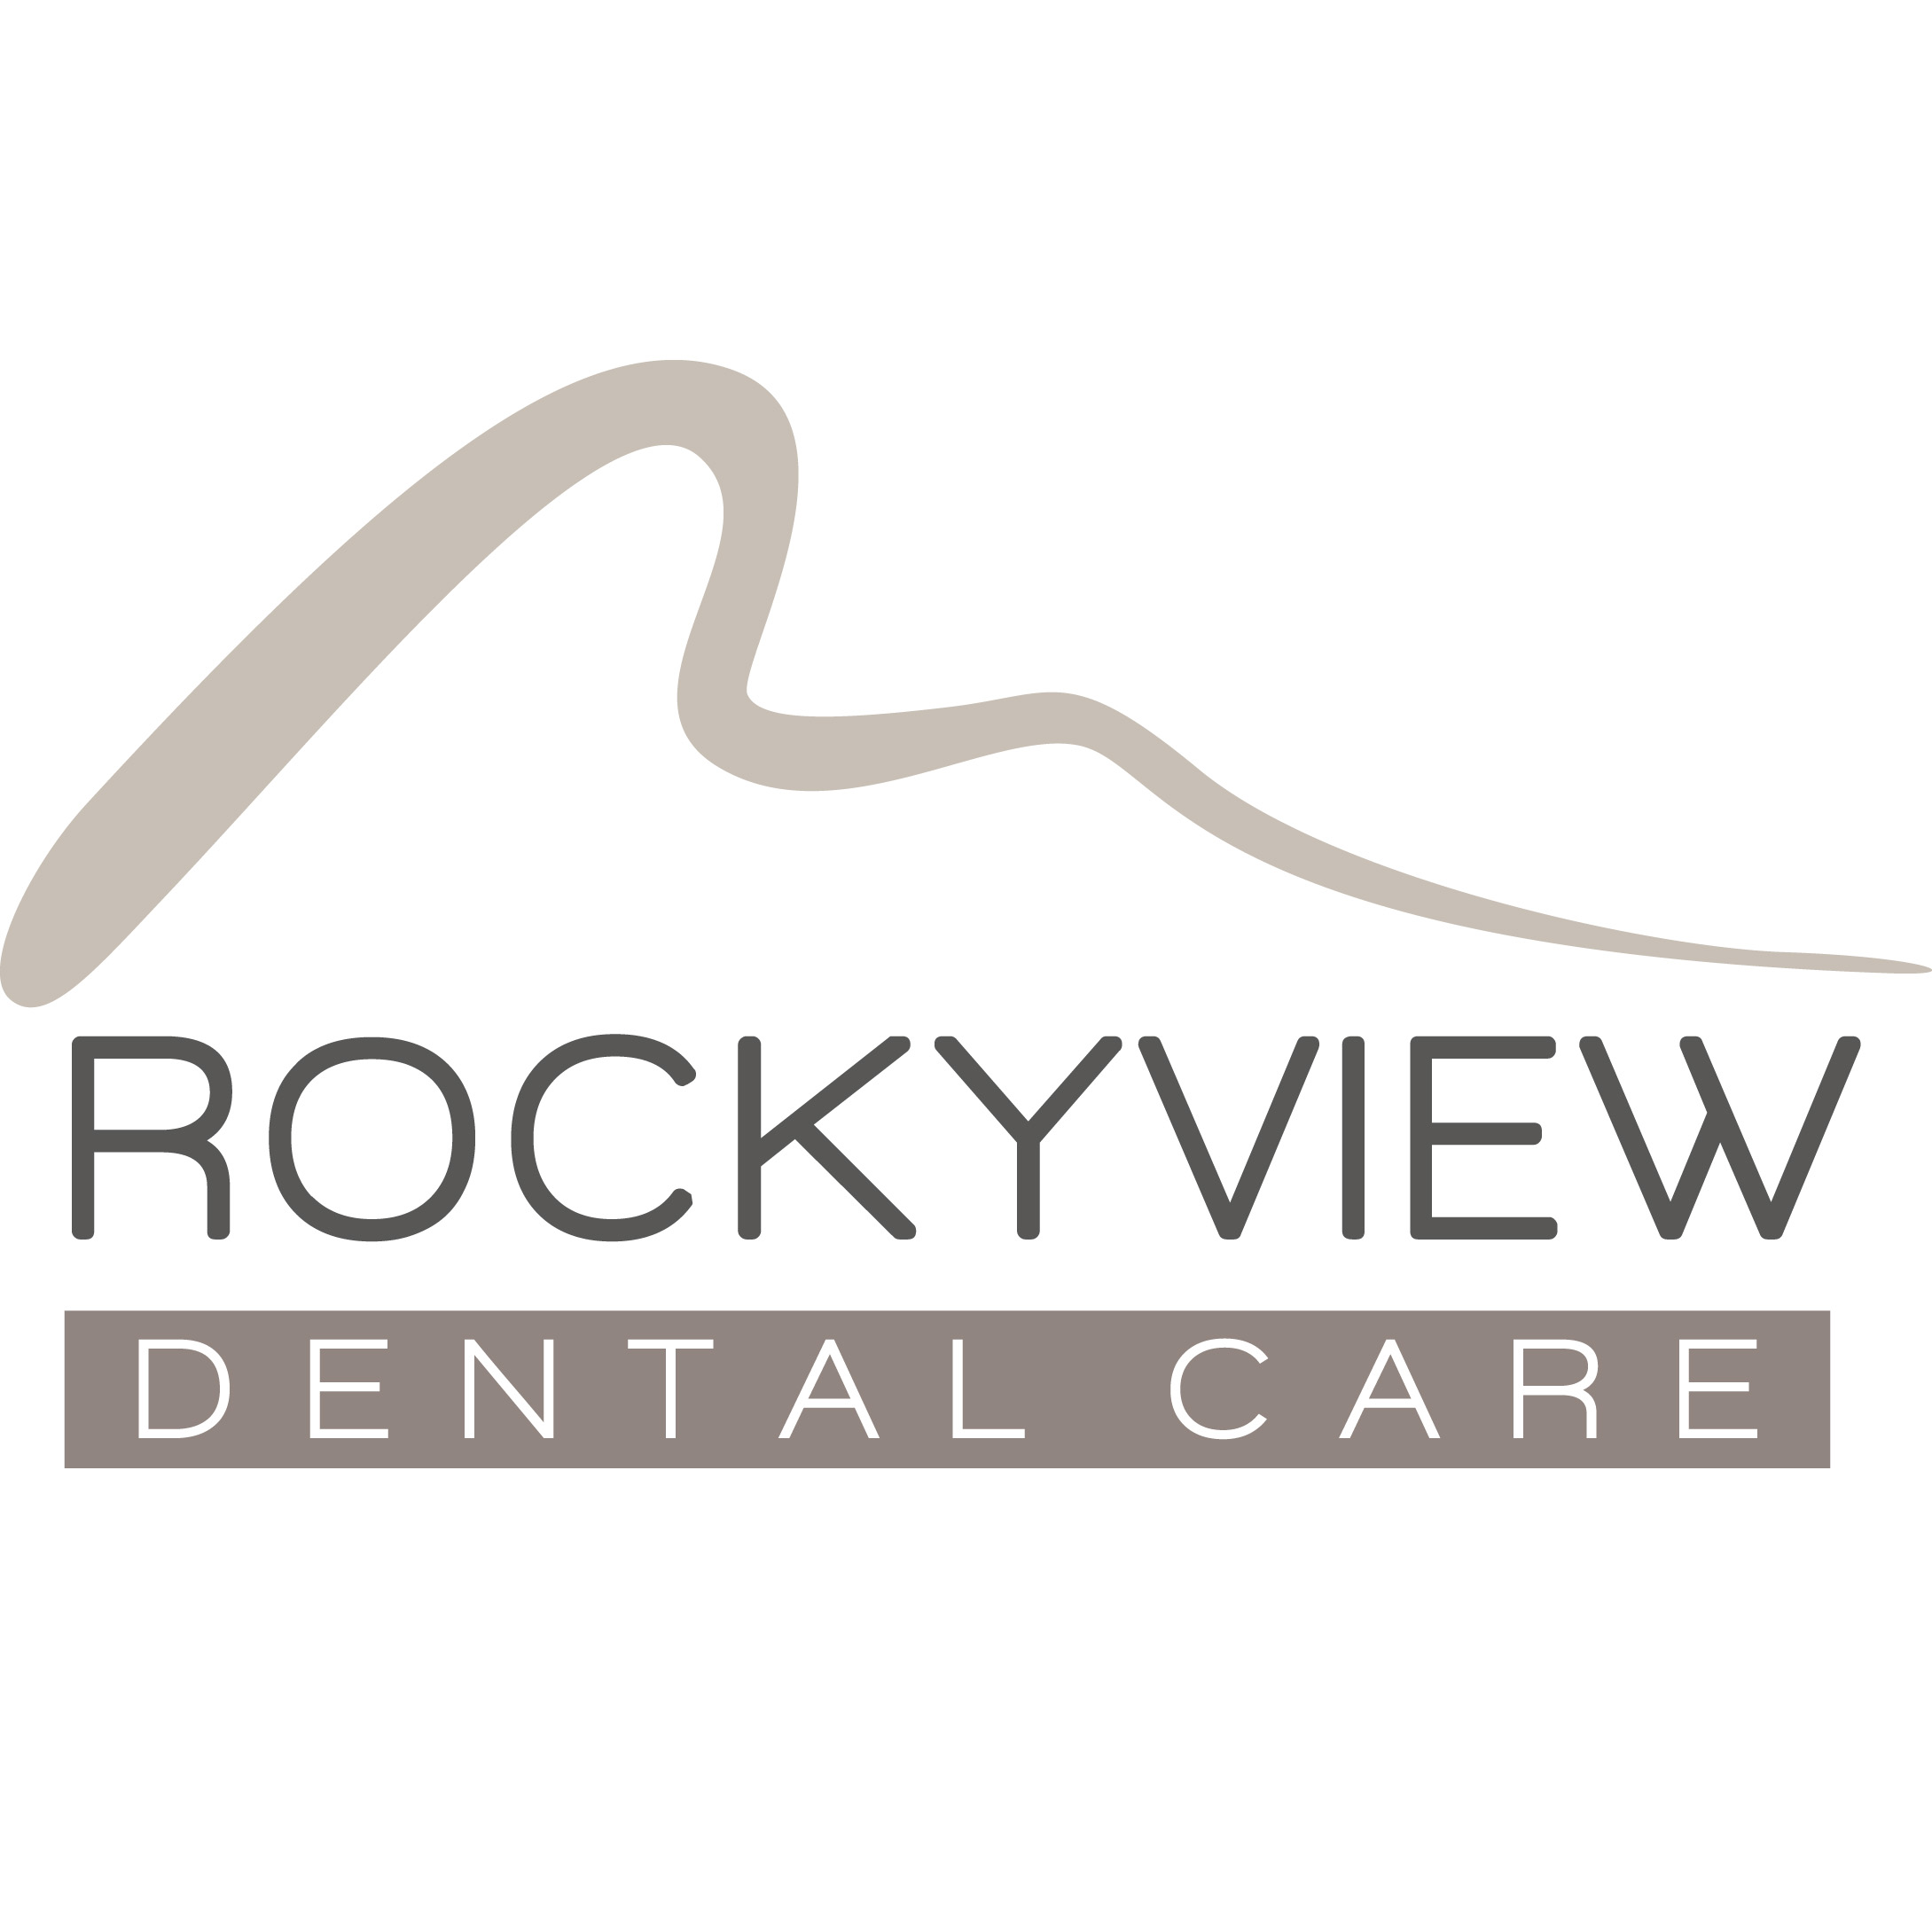 Rockyview Dental Care – General Dentists Dr. Lilian Mui, Dr. Abraham Ber, Dr. Edward Chang with direct insurance billing